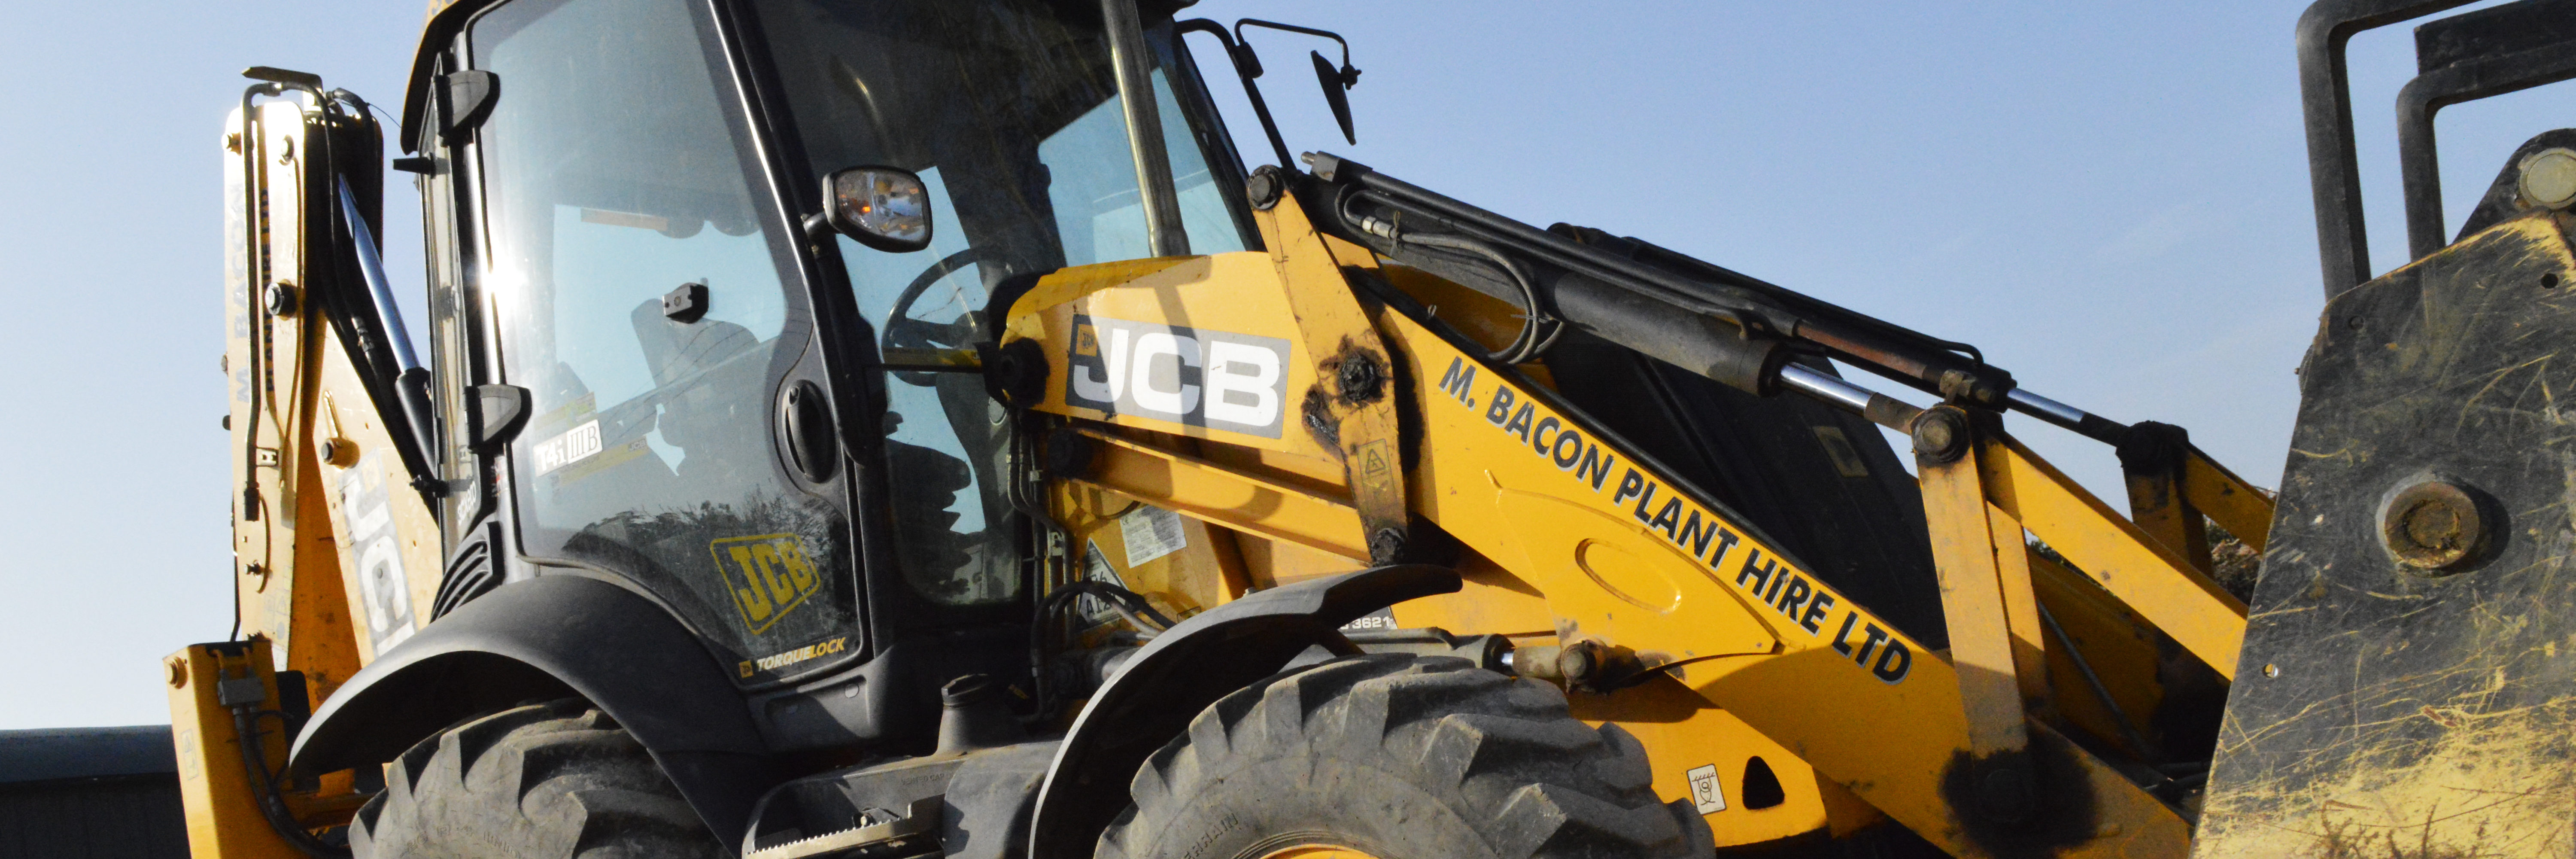 Plant Machinery for Hire in Lincolnshire | Self-drive Plant